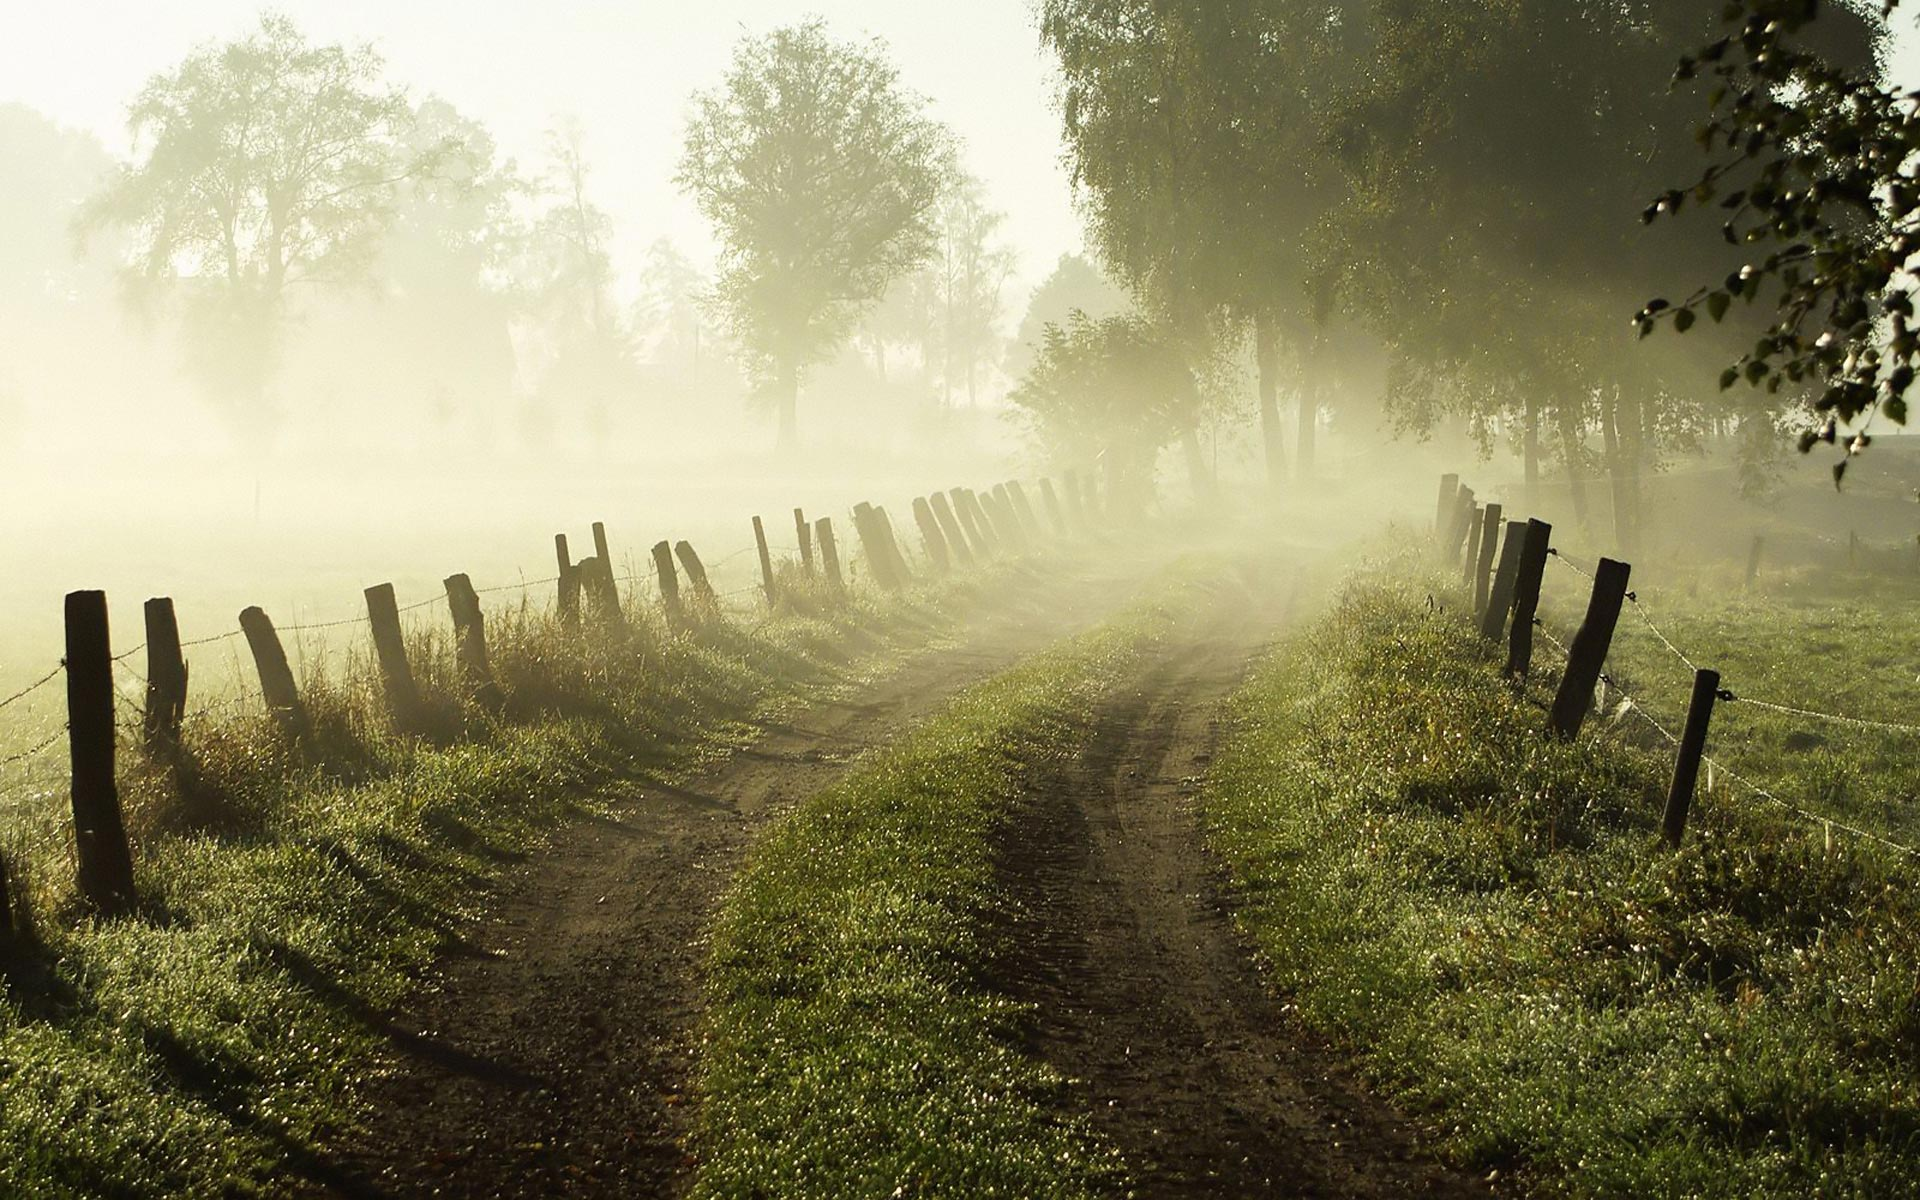 Desktop Wallpaper · Gallery · Nature Morning Fog Desktop Wallpaper